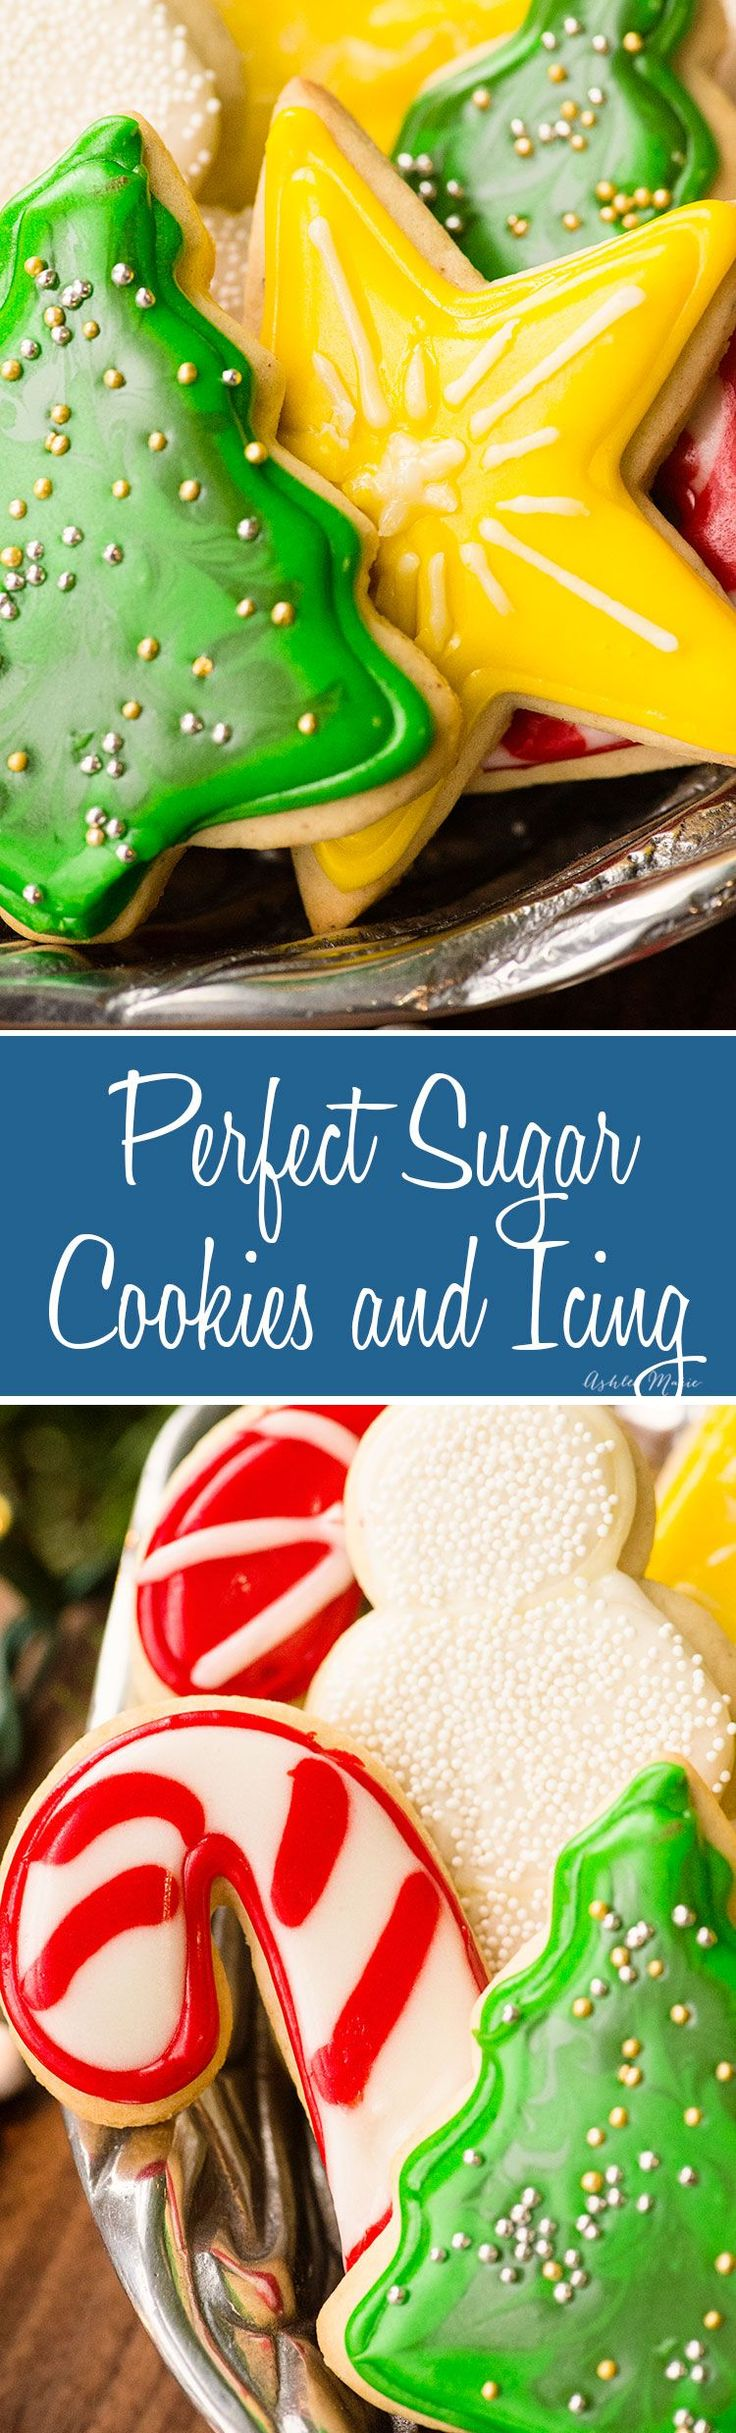 Easy and delicious Sugar Cookie recipes with a video tutorial including tips for decorating. | Winter | Holiday | Cookies | Icing | Christmas | #christmascookies #christmasrecipes #winter #holiday #cookies (easy fun desserts holiday cookies)